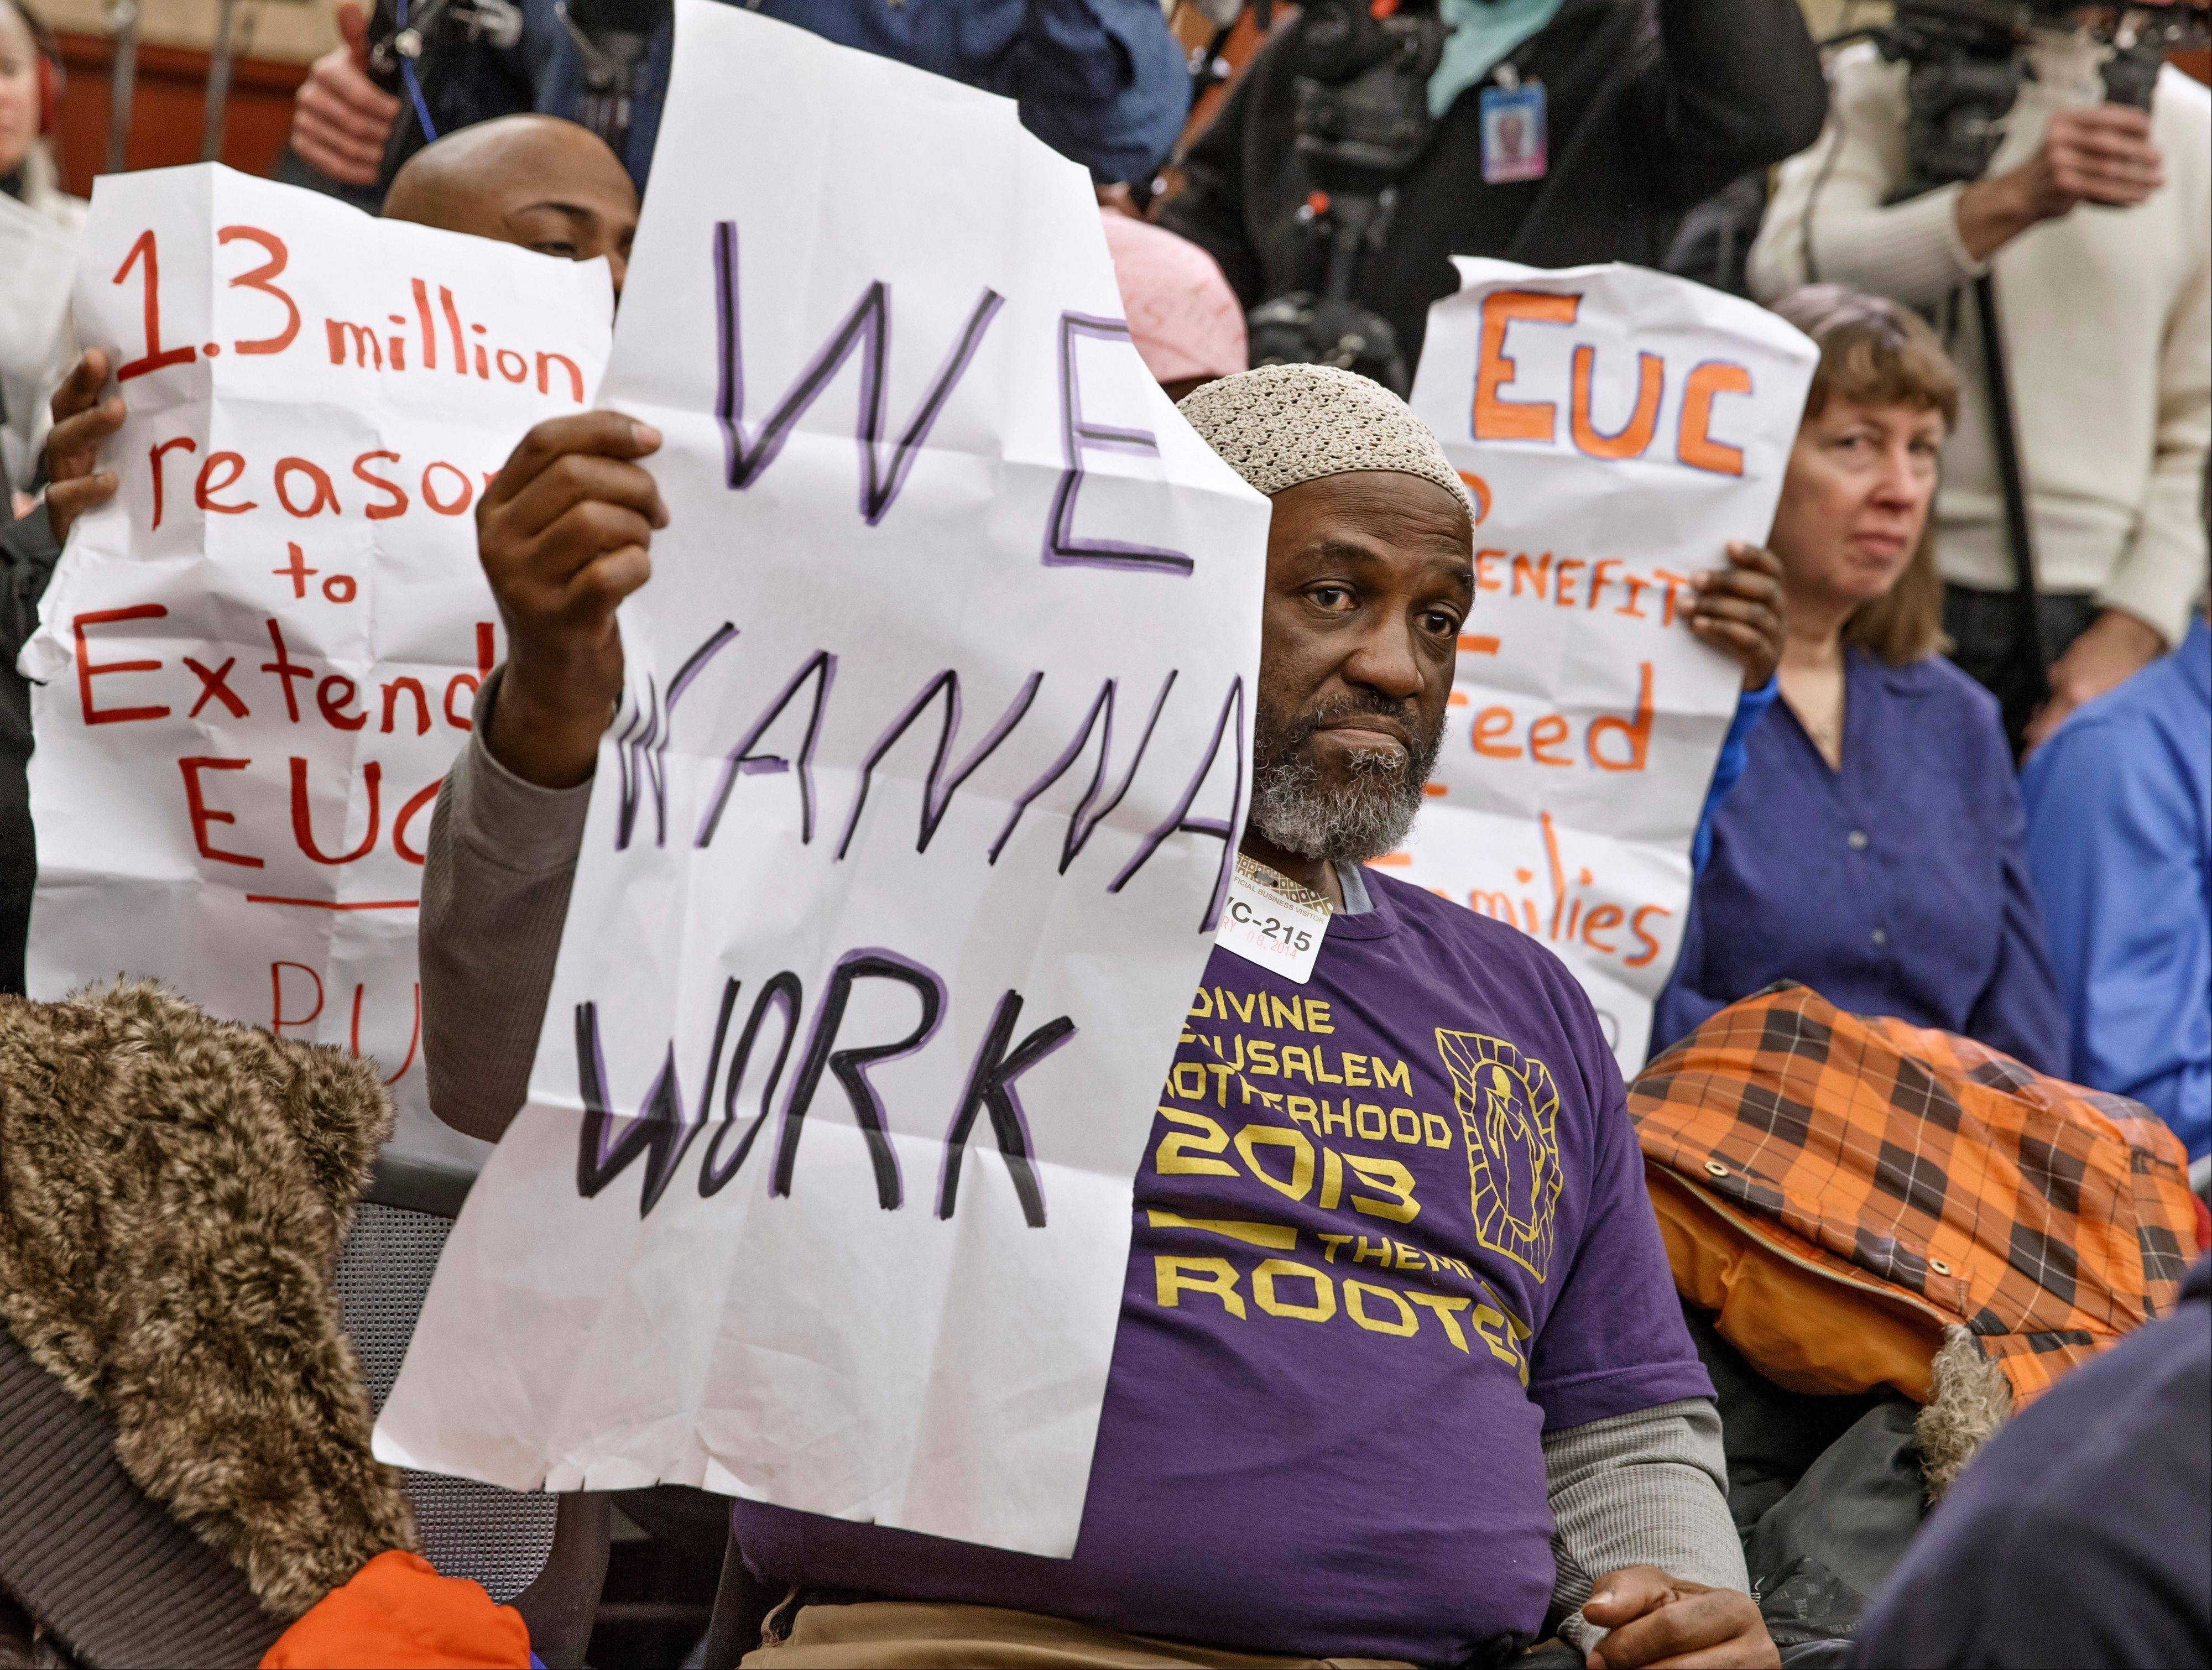 Audience members hold signs appealing for jobs as they attend a Democratic news conference about extending unemployment insurance benefits which expired Dec. 28, on Capitol Hill in Washington. Unemployment in America has gone down in the last several years, but it remains a serious drag on the economy.